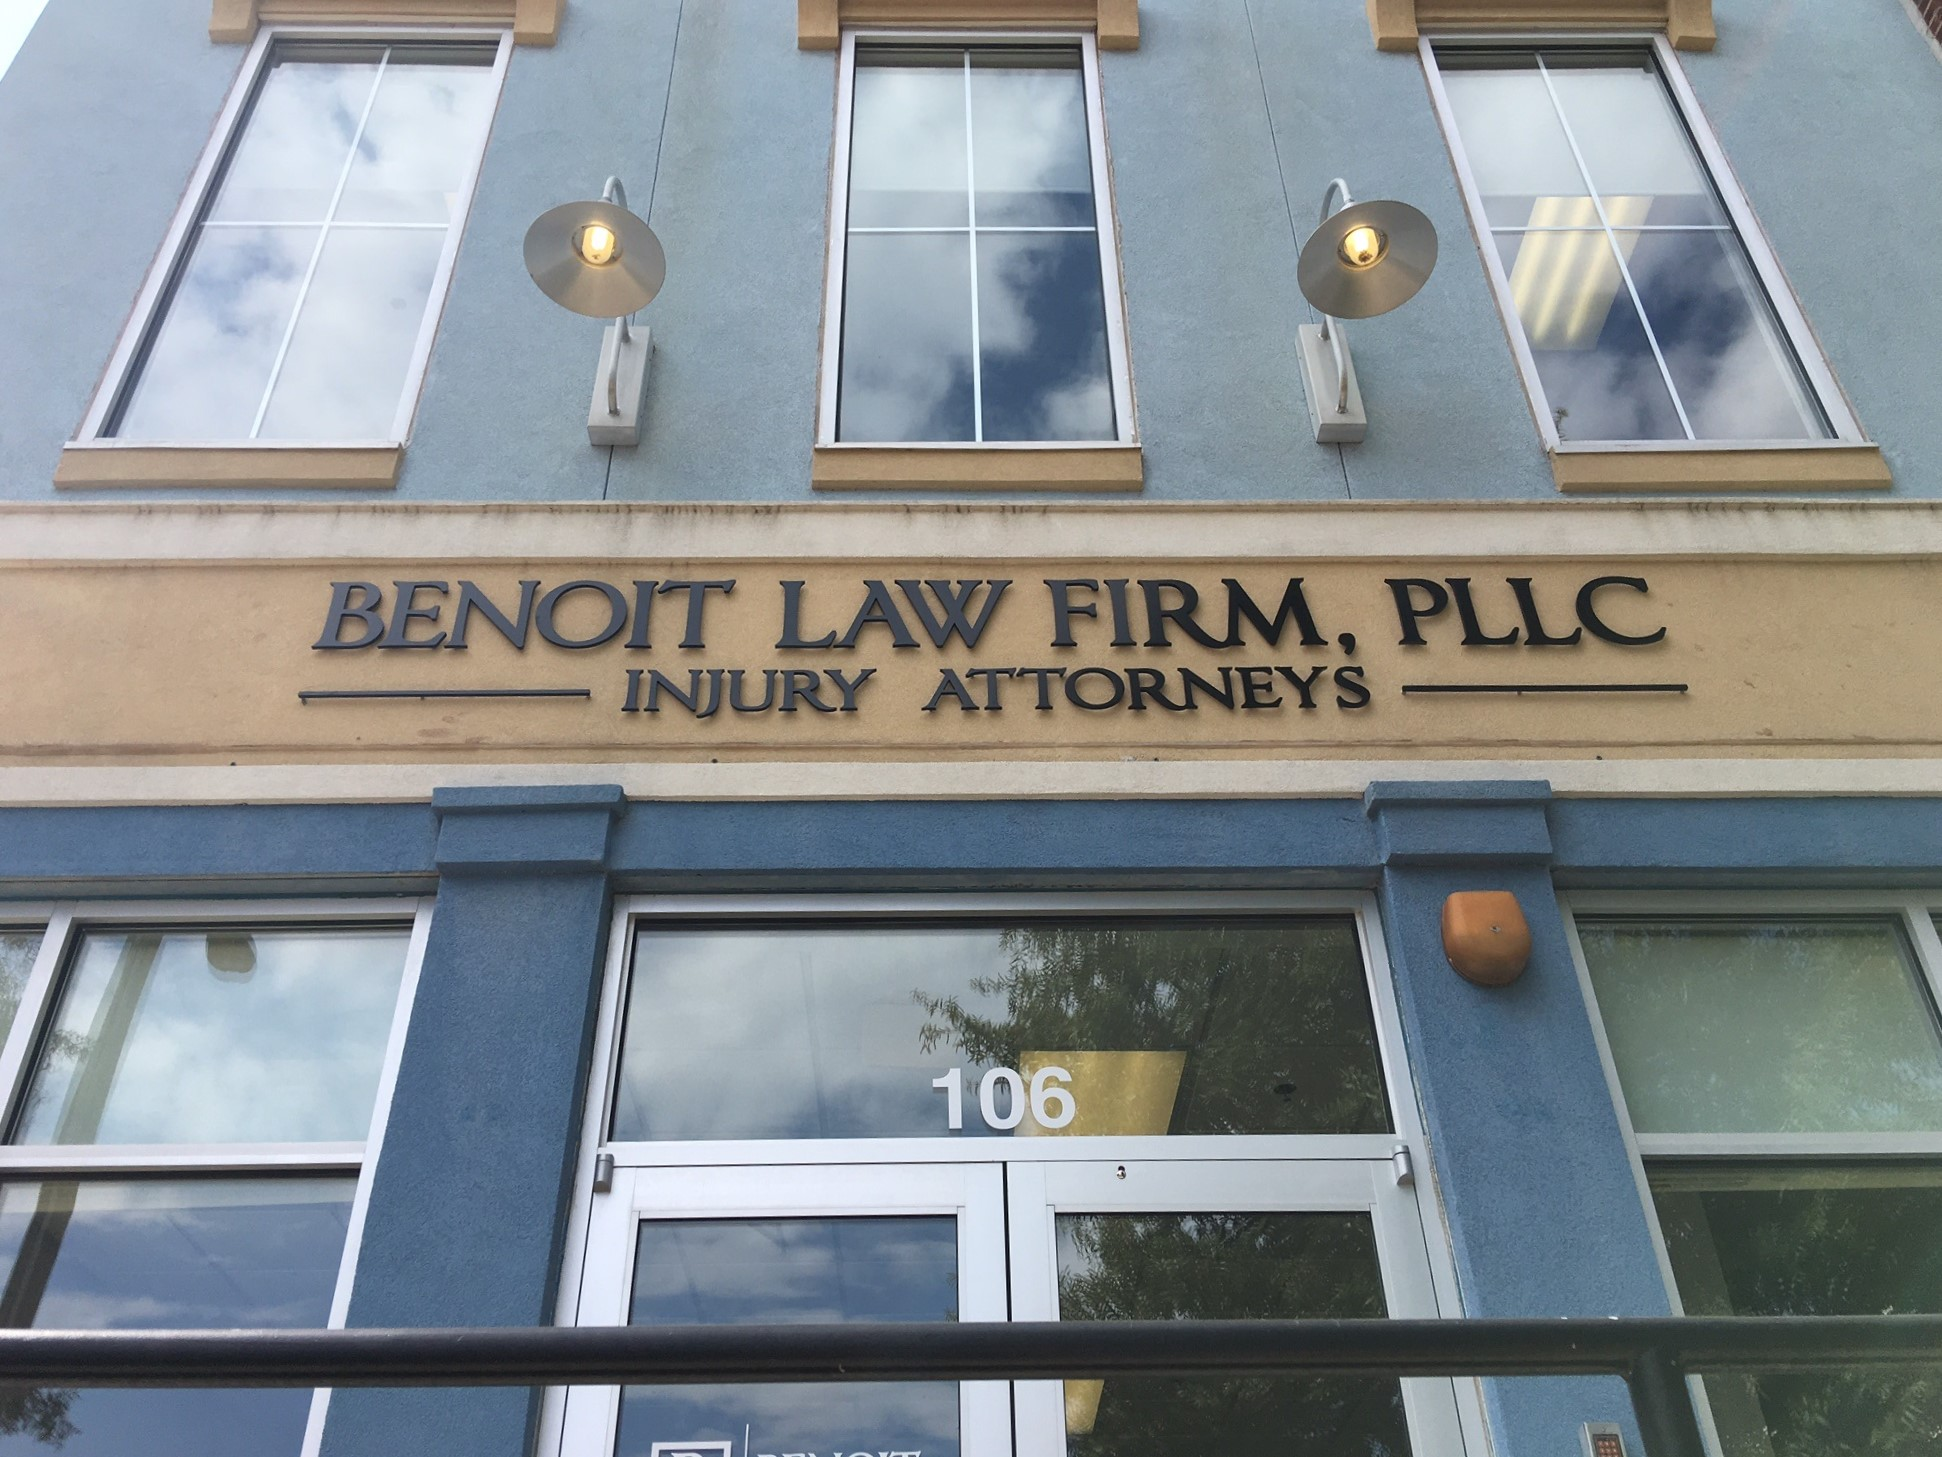 A complete sign package for benoit law firm of charlotte by jc signs jc signs charlotte for Exterior office signs